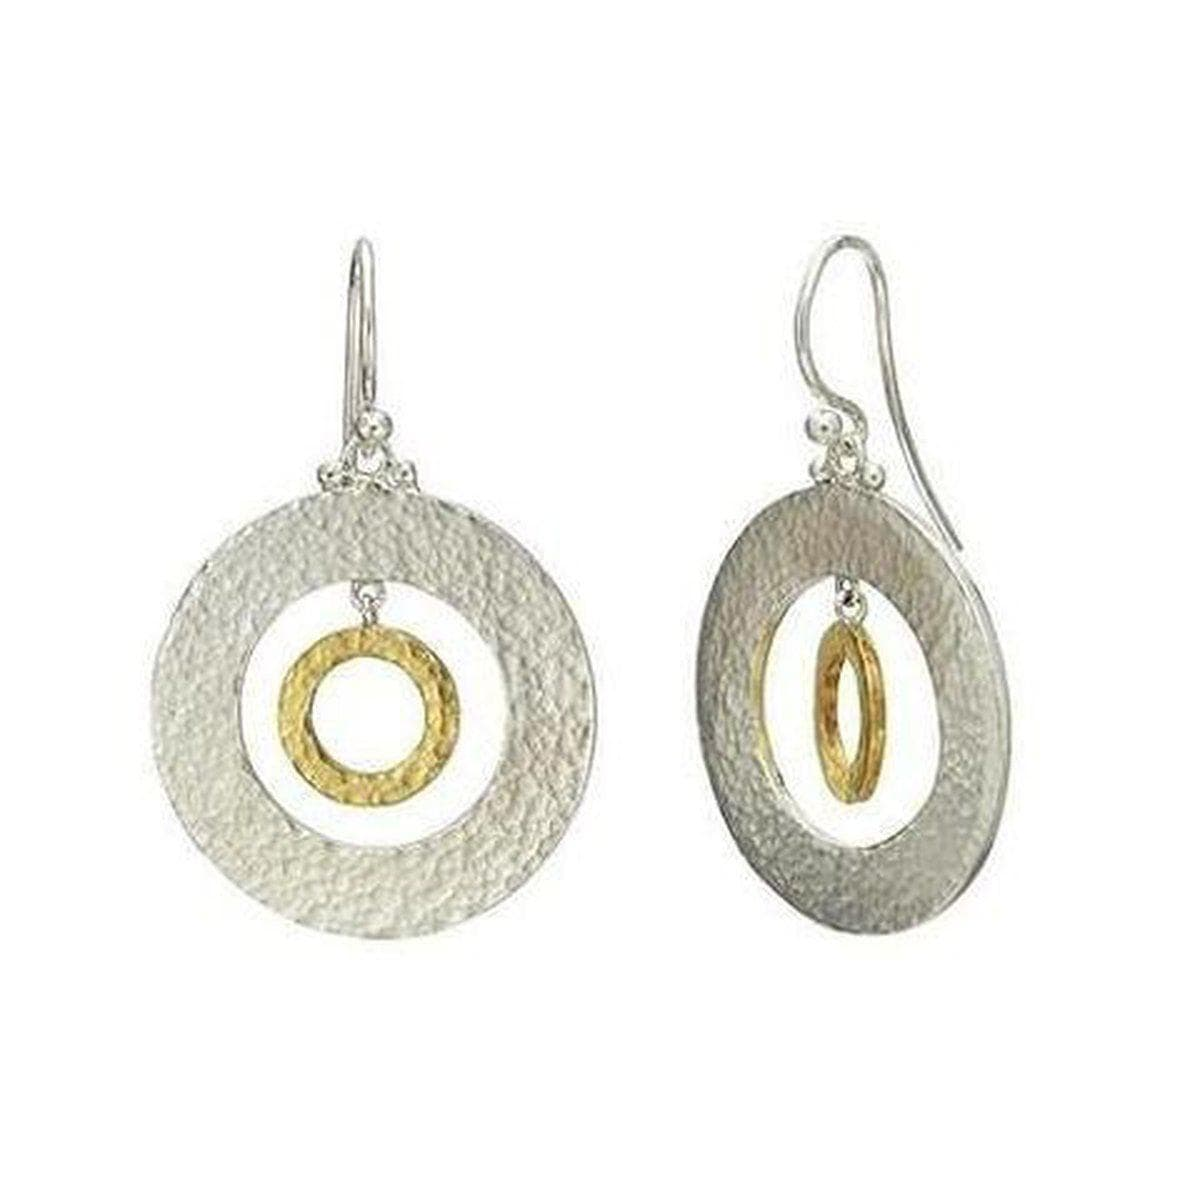 Mango Sterling Silver Earrings - EHSSG-HPF25W-HPF10G-GURHAN-Renee Taylor Gallery